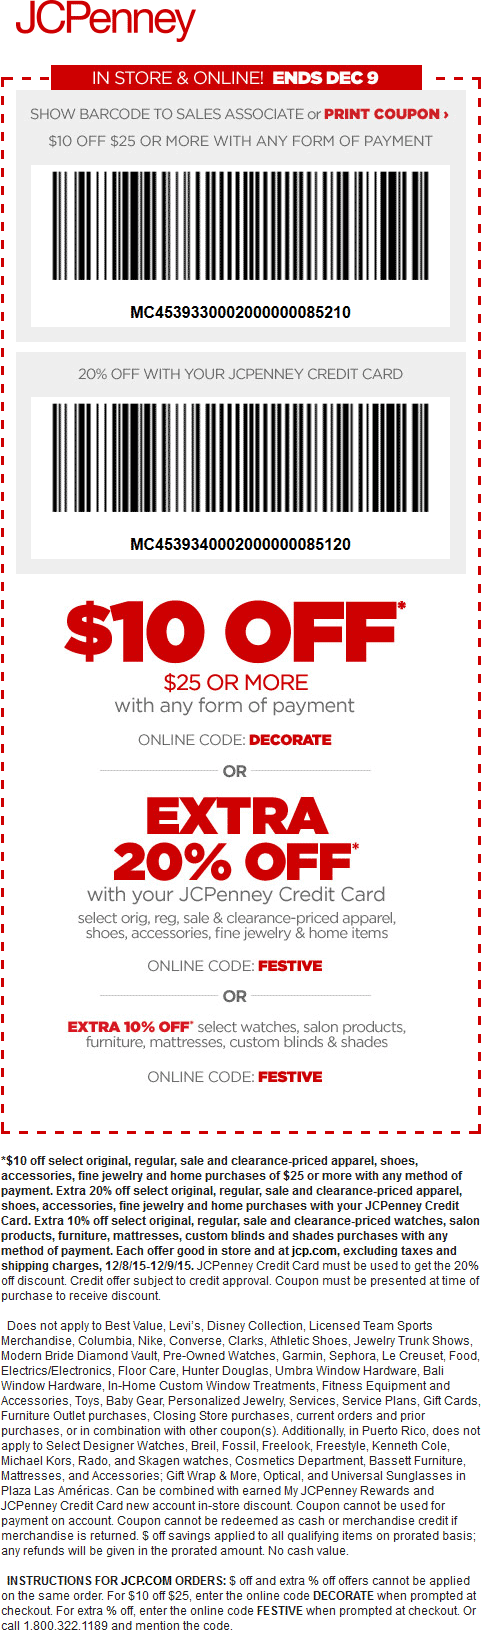 JCPenney Coupon November 2018 $10 off $25 today at JCPenney, or online via promo code DECORATE